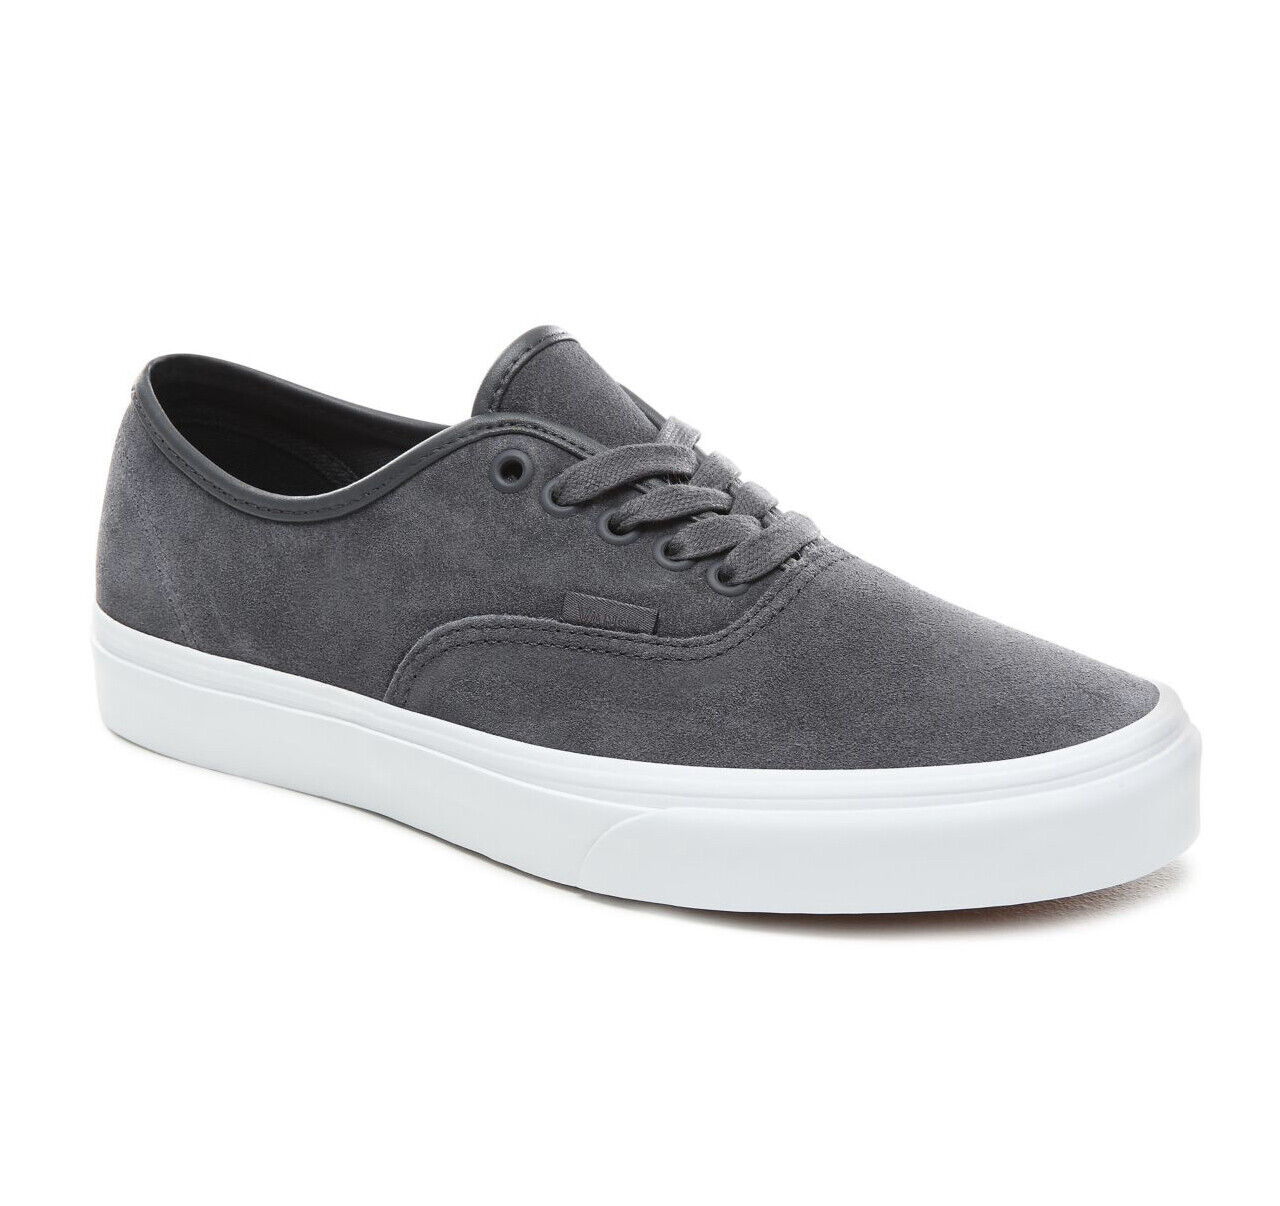 Vans Authentic Soft Suede - Ebony White (VN0A38EMVKE1) RRP